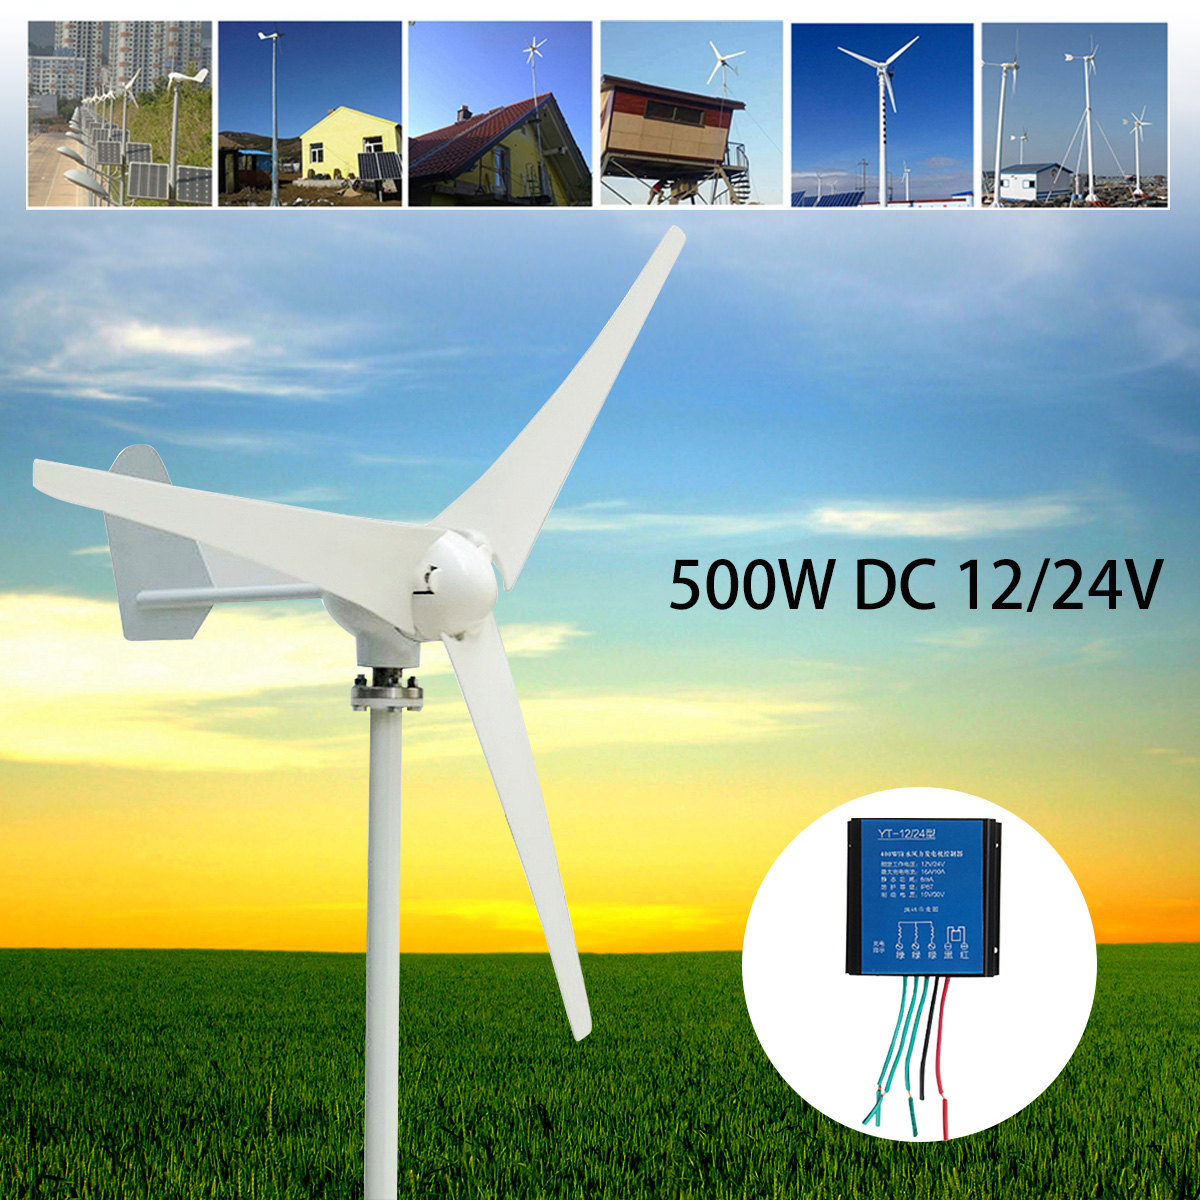 Max 600W Wind Turbine Generator DC 12V 24V 3 Blade Power Supply + Charge Controller